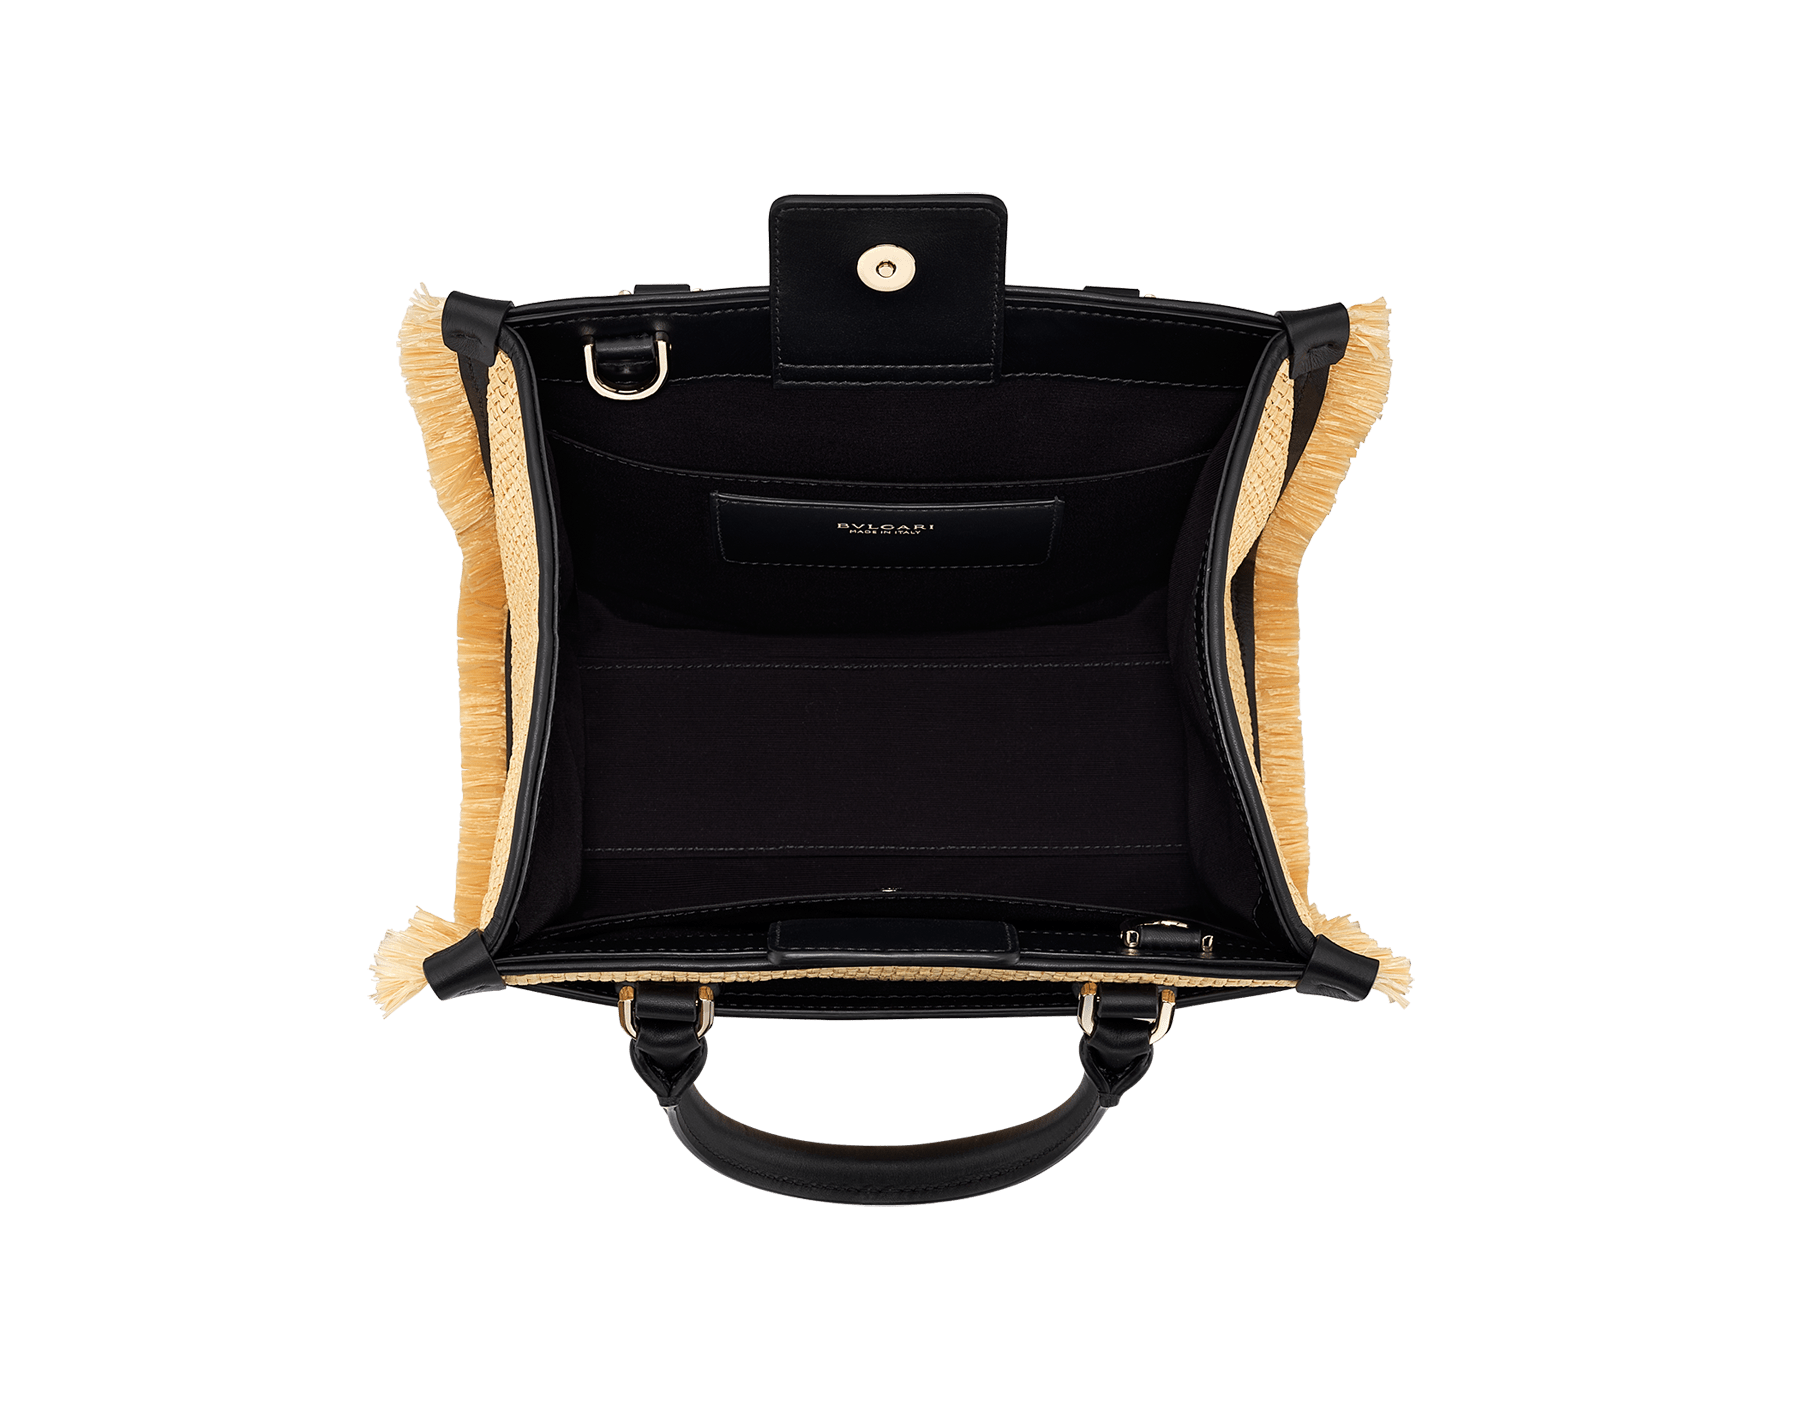 """Bvlgari Logo"" tote bag in beige raffia enhanced with beige raffia fringes, and black grosgrain internal lining. Bvlgari logo featured with chain inserts on the black calf leather. 290953 image 5"